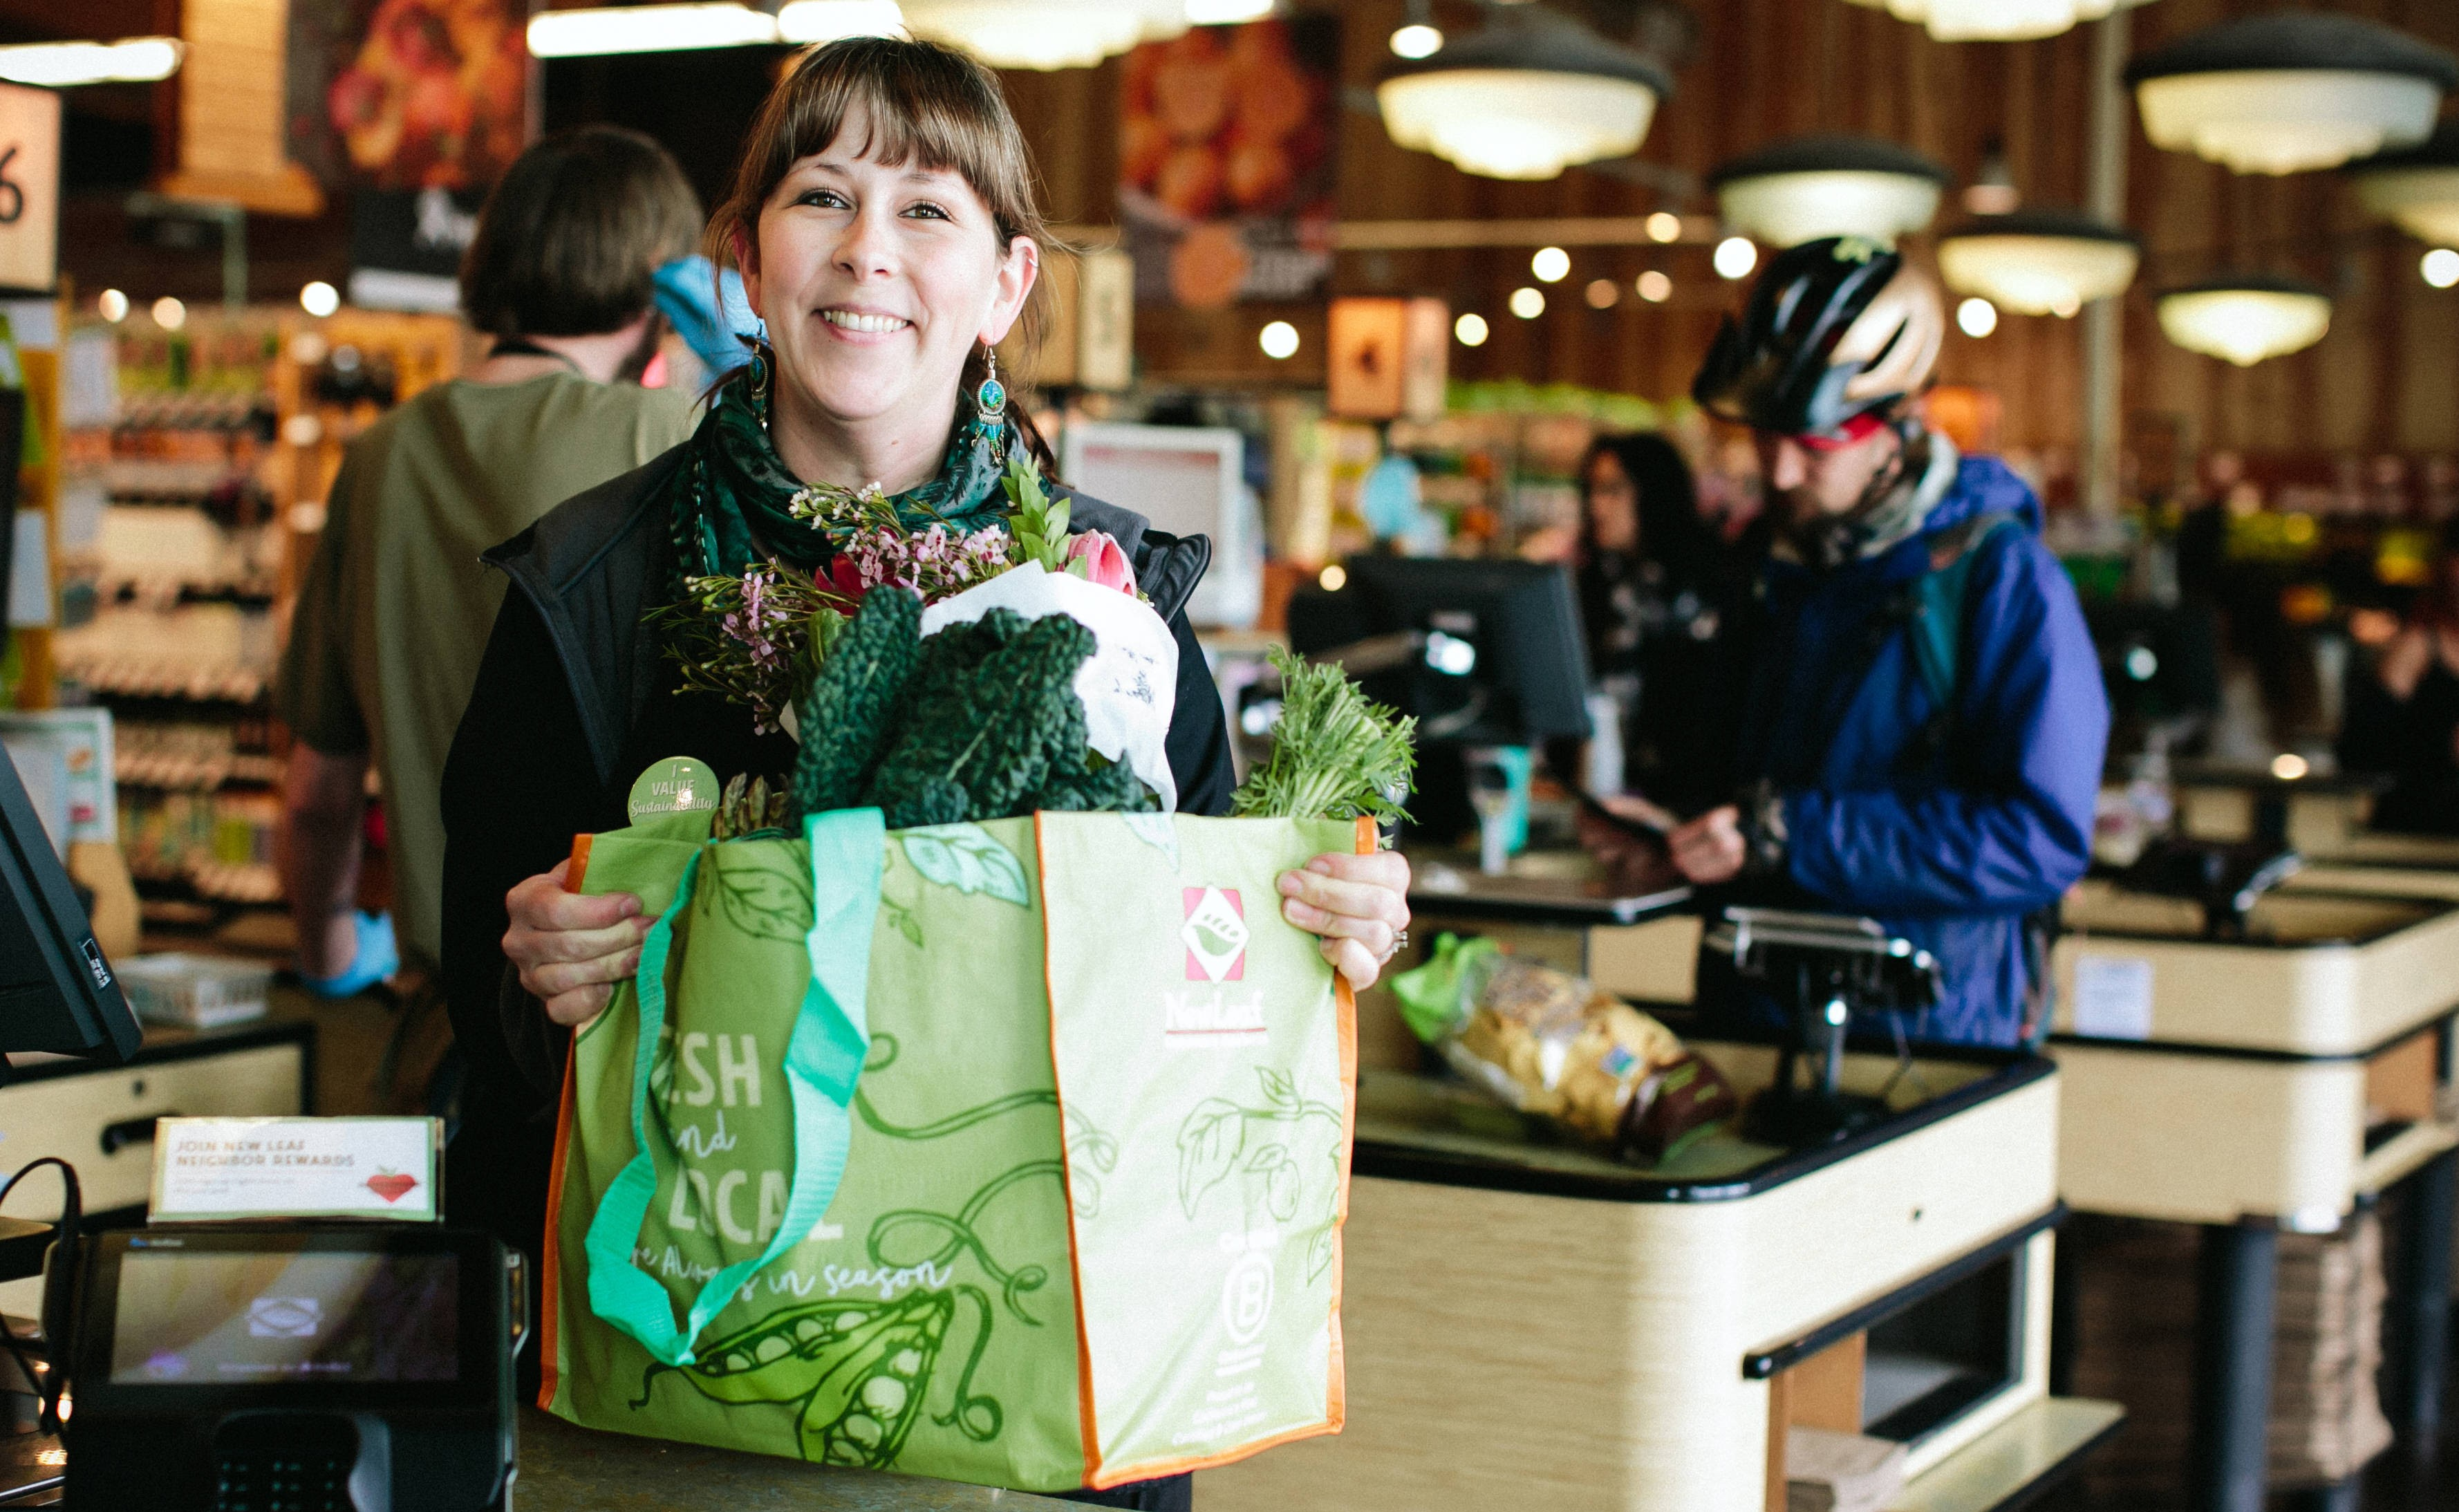 New Leaf Community Markets grocery store cashier smiling and while handing over a reusable bag full of groceries